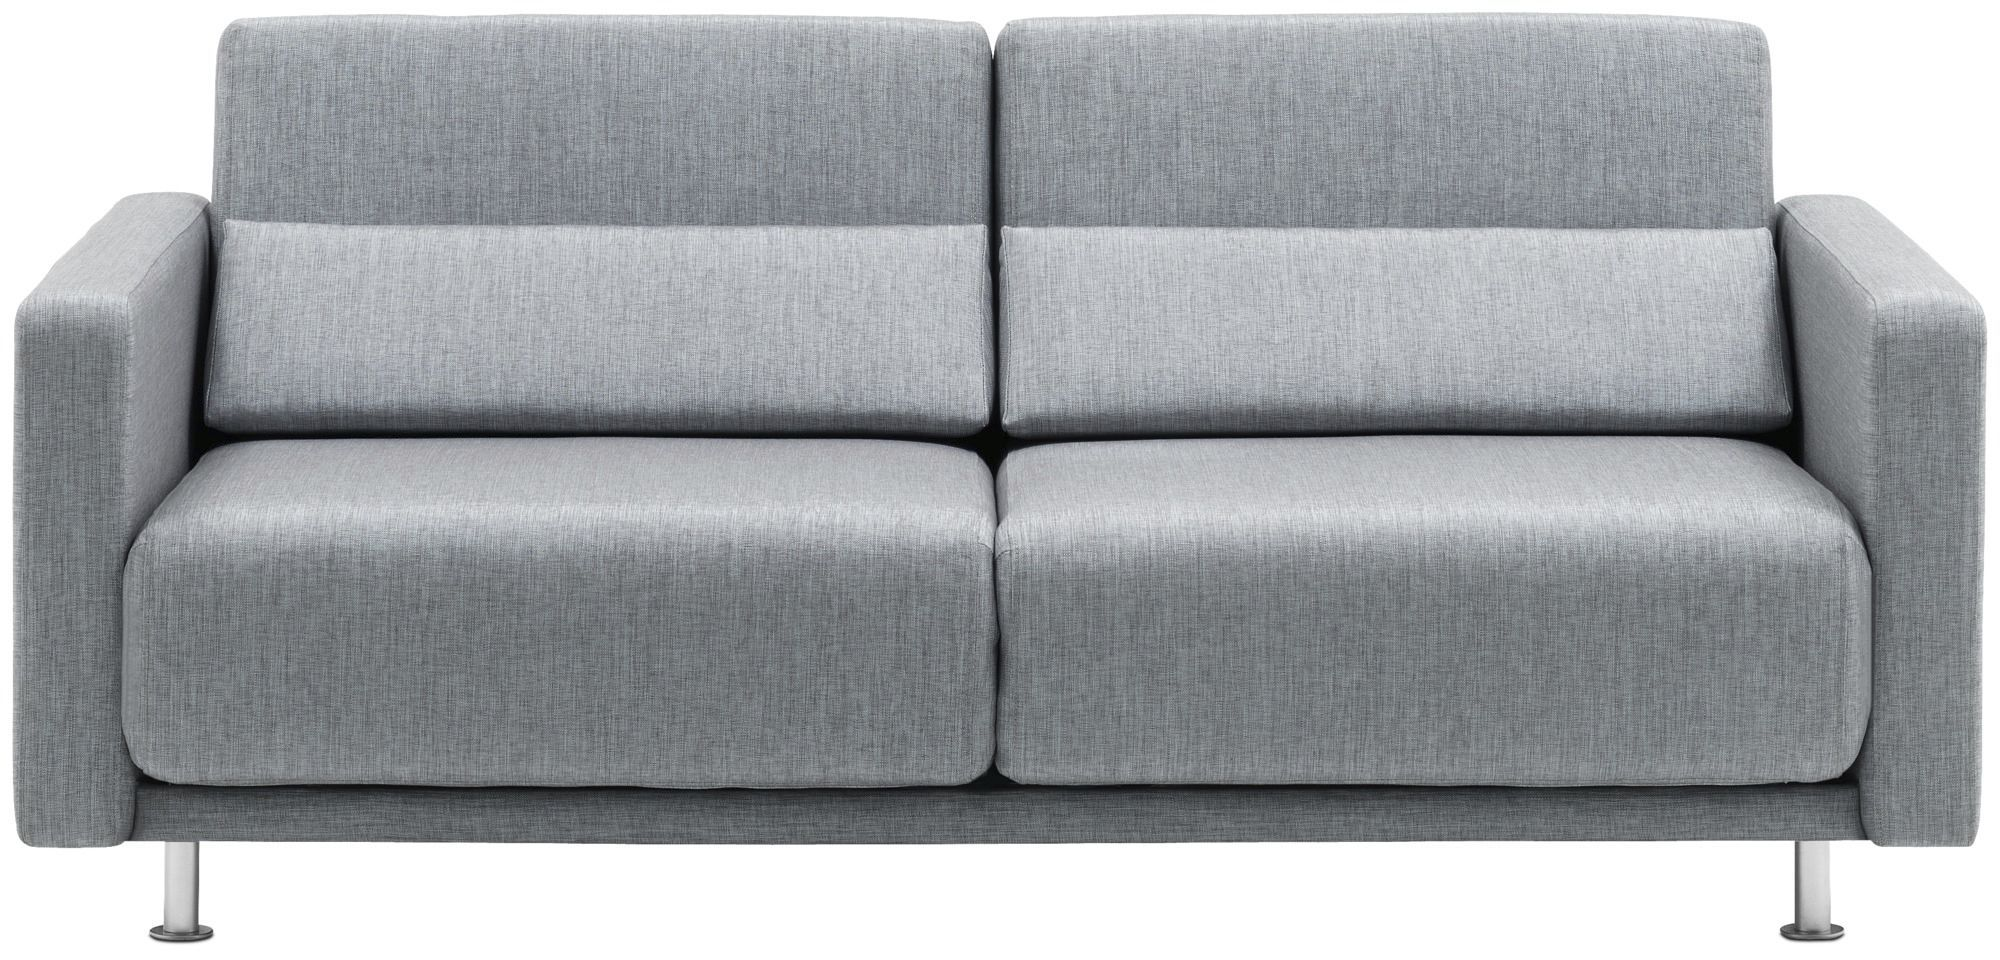 boconcept sleeper sofa review shabby chic tables bed contemporary fabric 2 5 seater melo